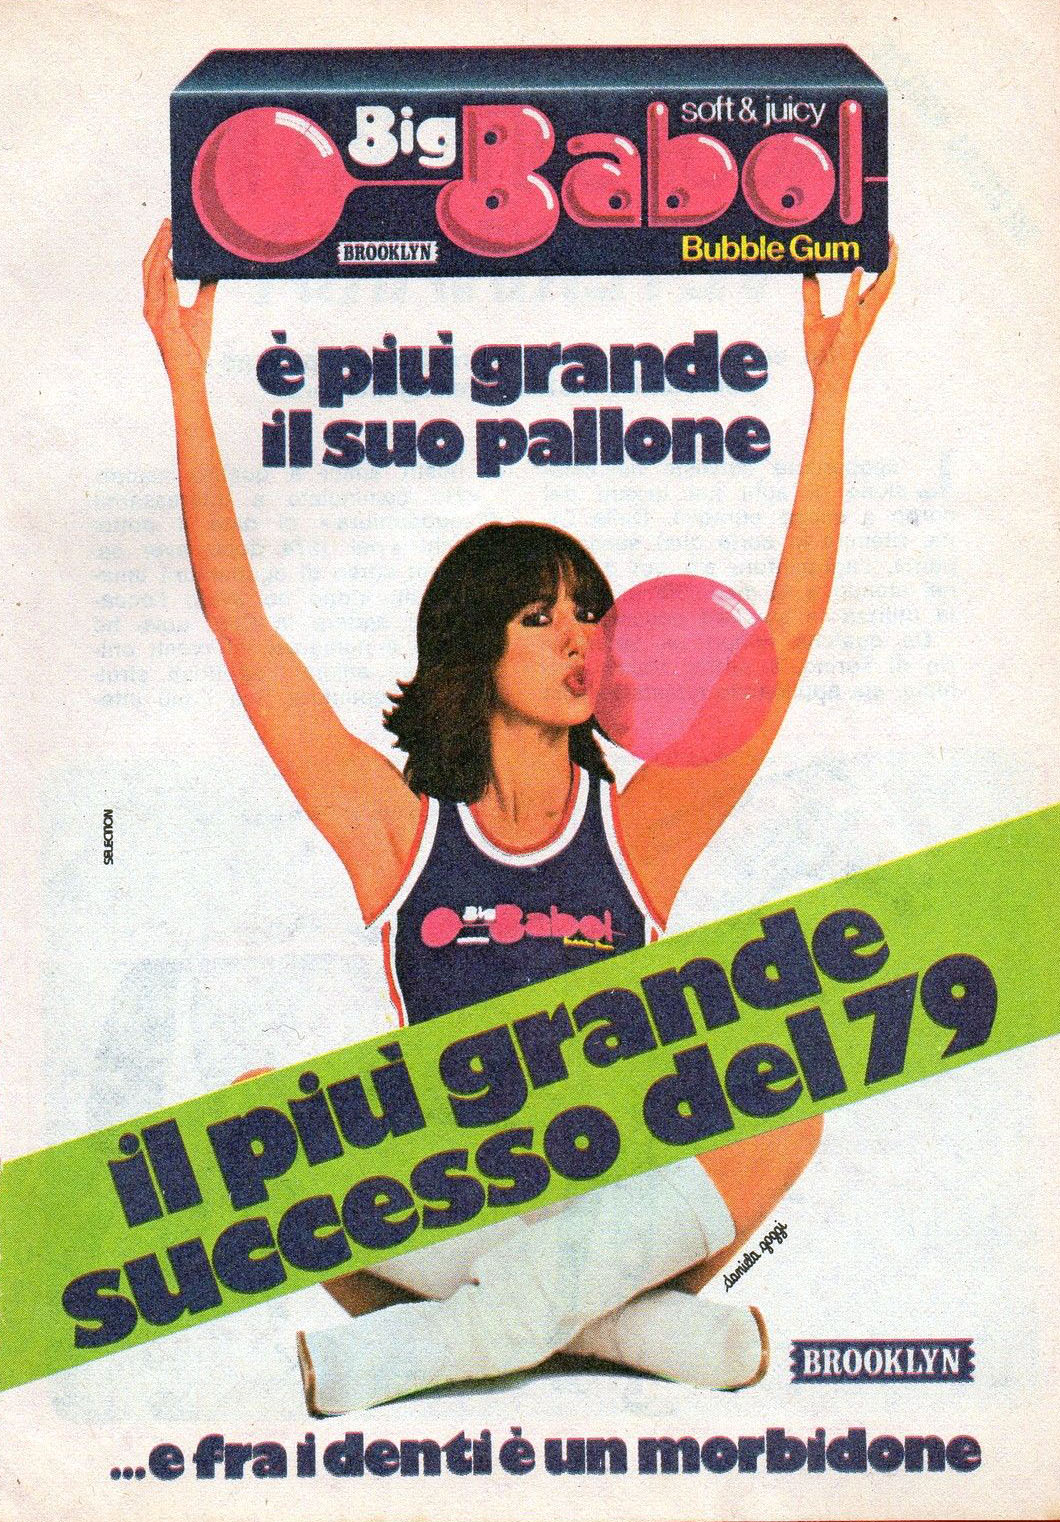 Italian food advert (27)